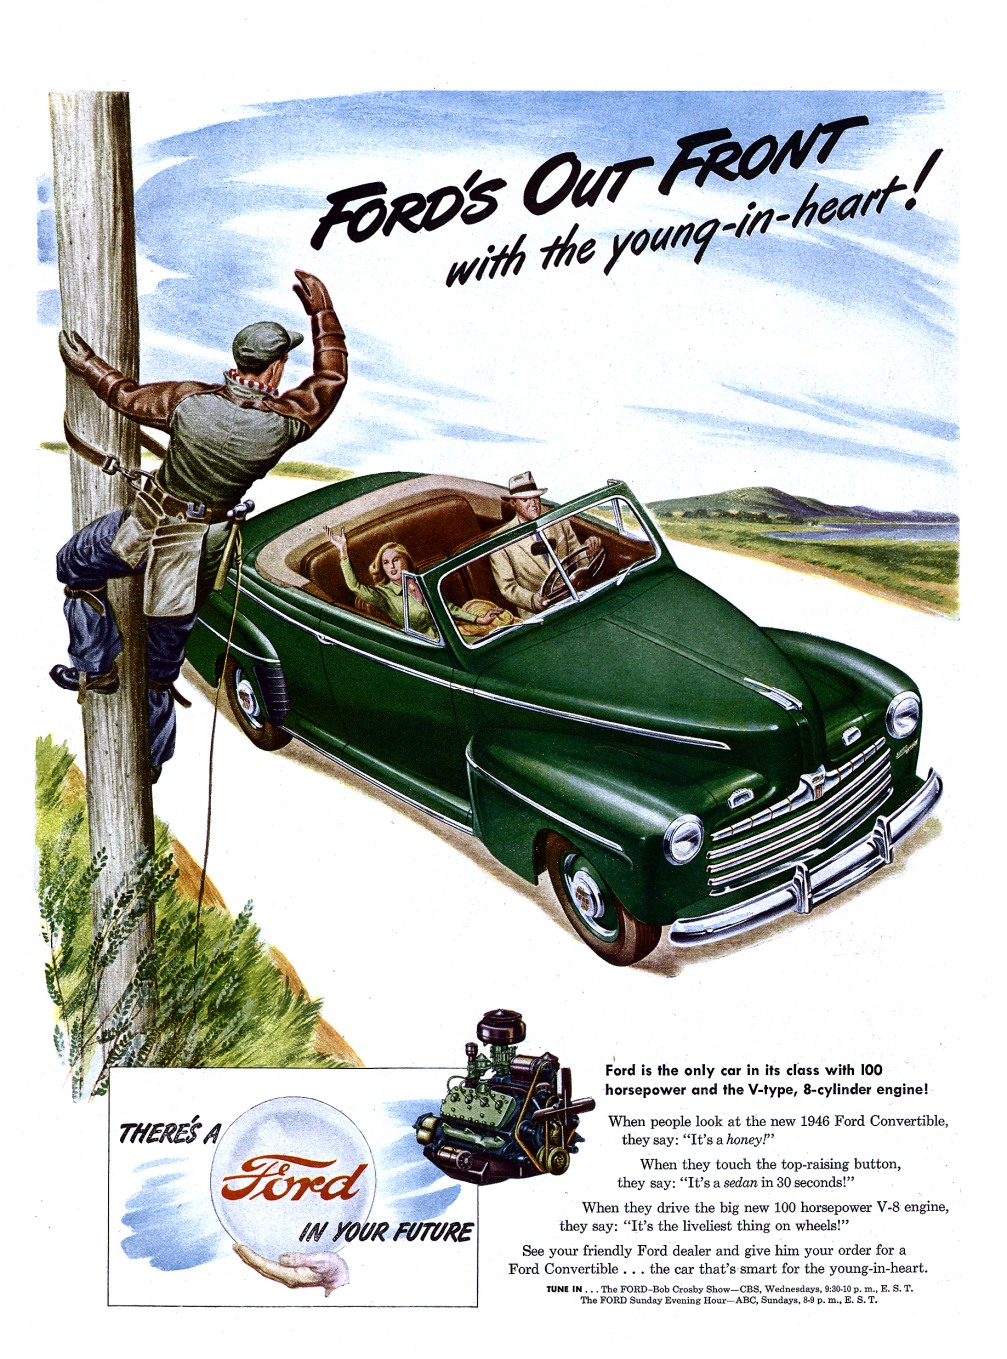 1946 Ford Conv-grn-advert_1946_06_03=porlock=.jpg